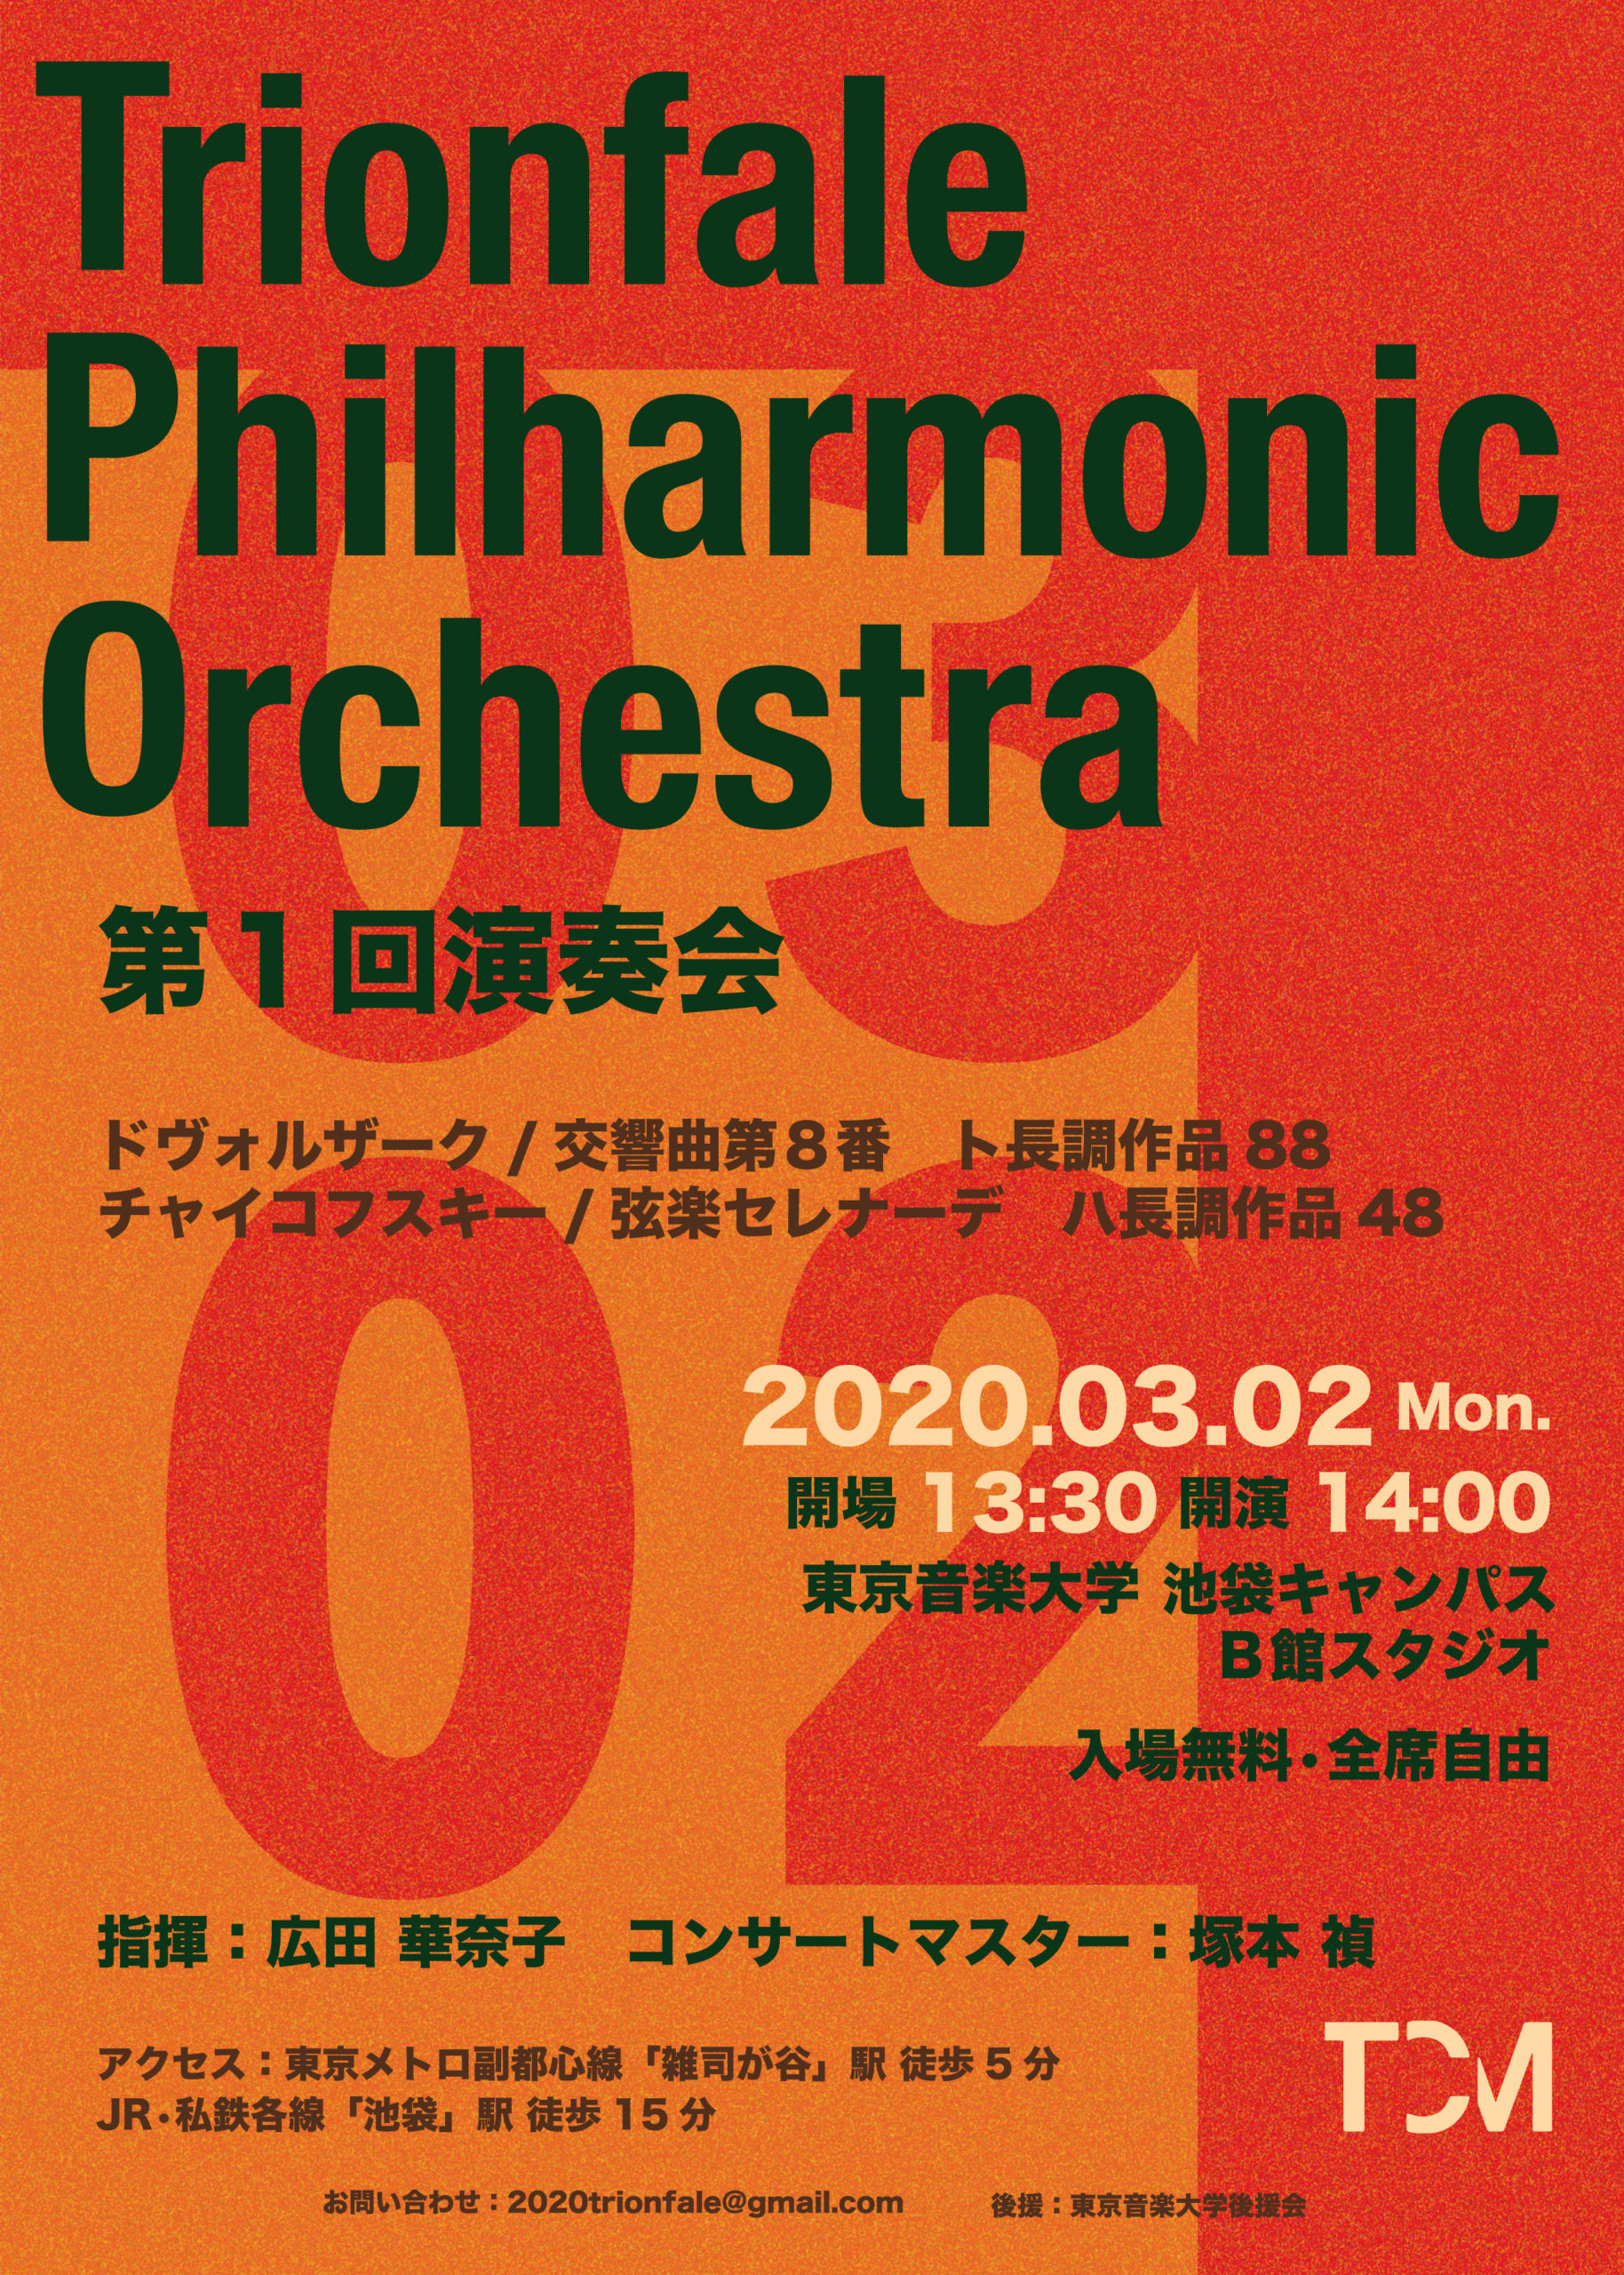 Trionfale Philharmonic Orchestra 第1回演奏会